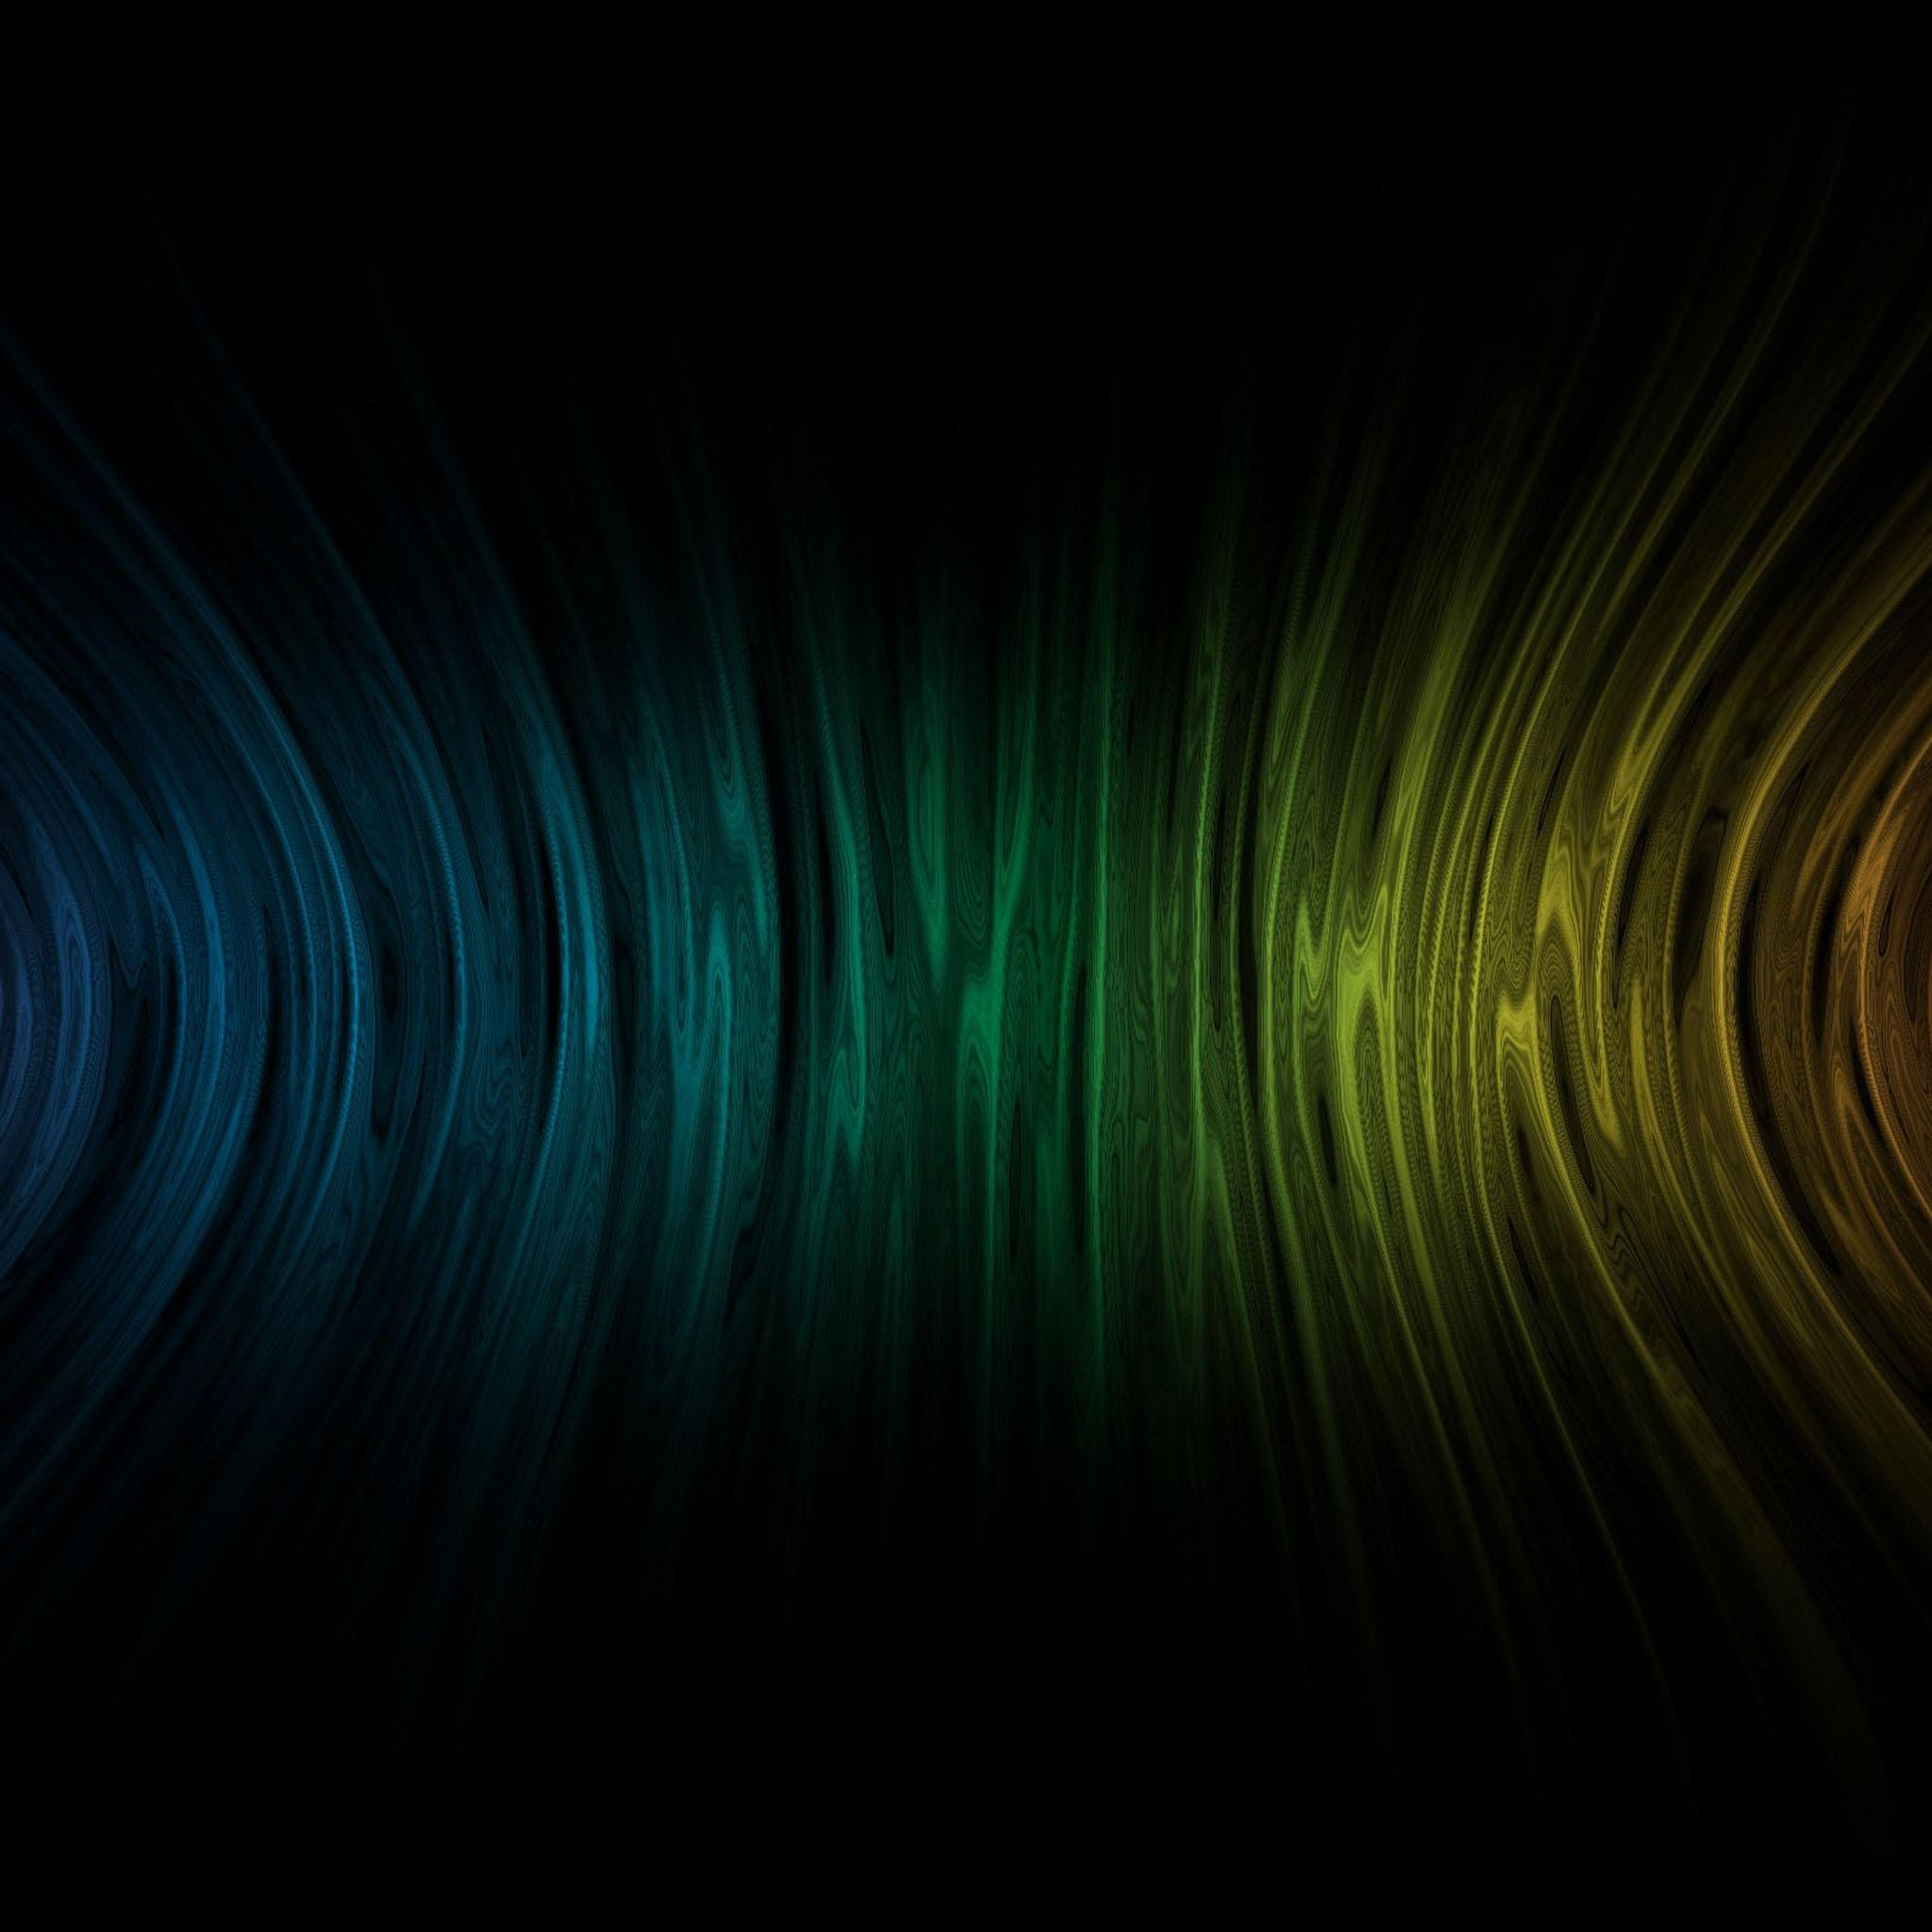 Abstract dark background 20482048 ipad wallpapers and backgrounds 2048x2048